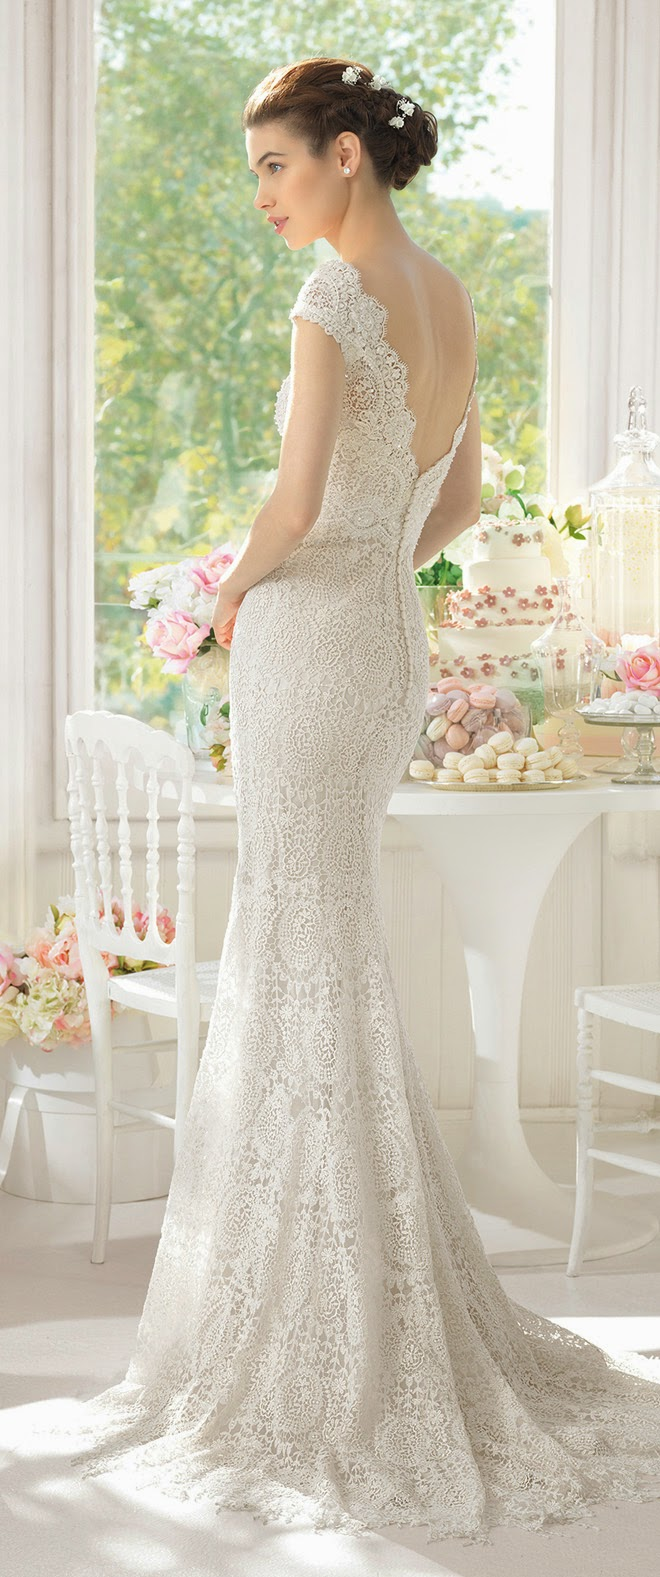 Aire Barcelona 2015 Bridal Collection - Part 2